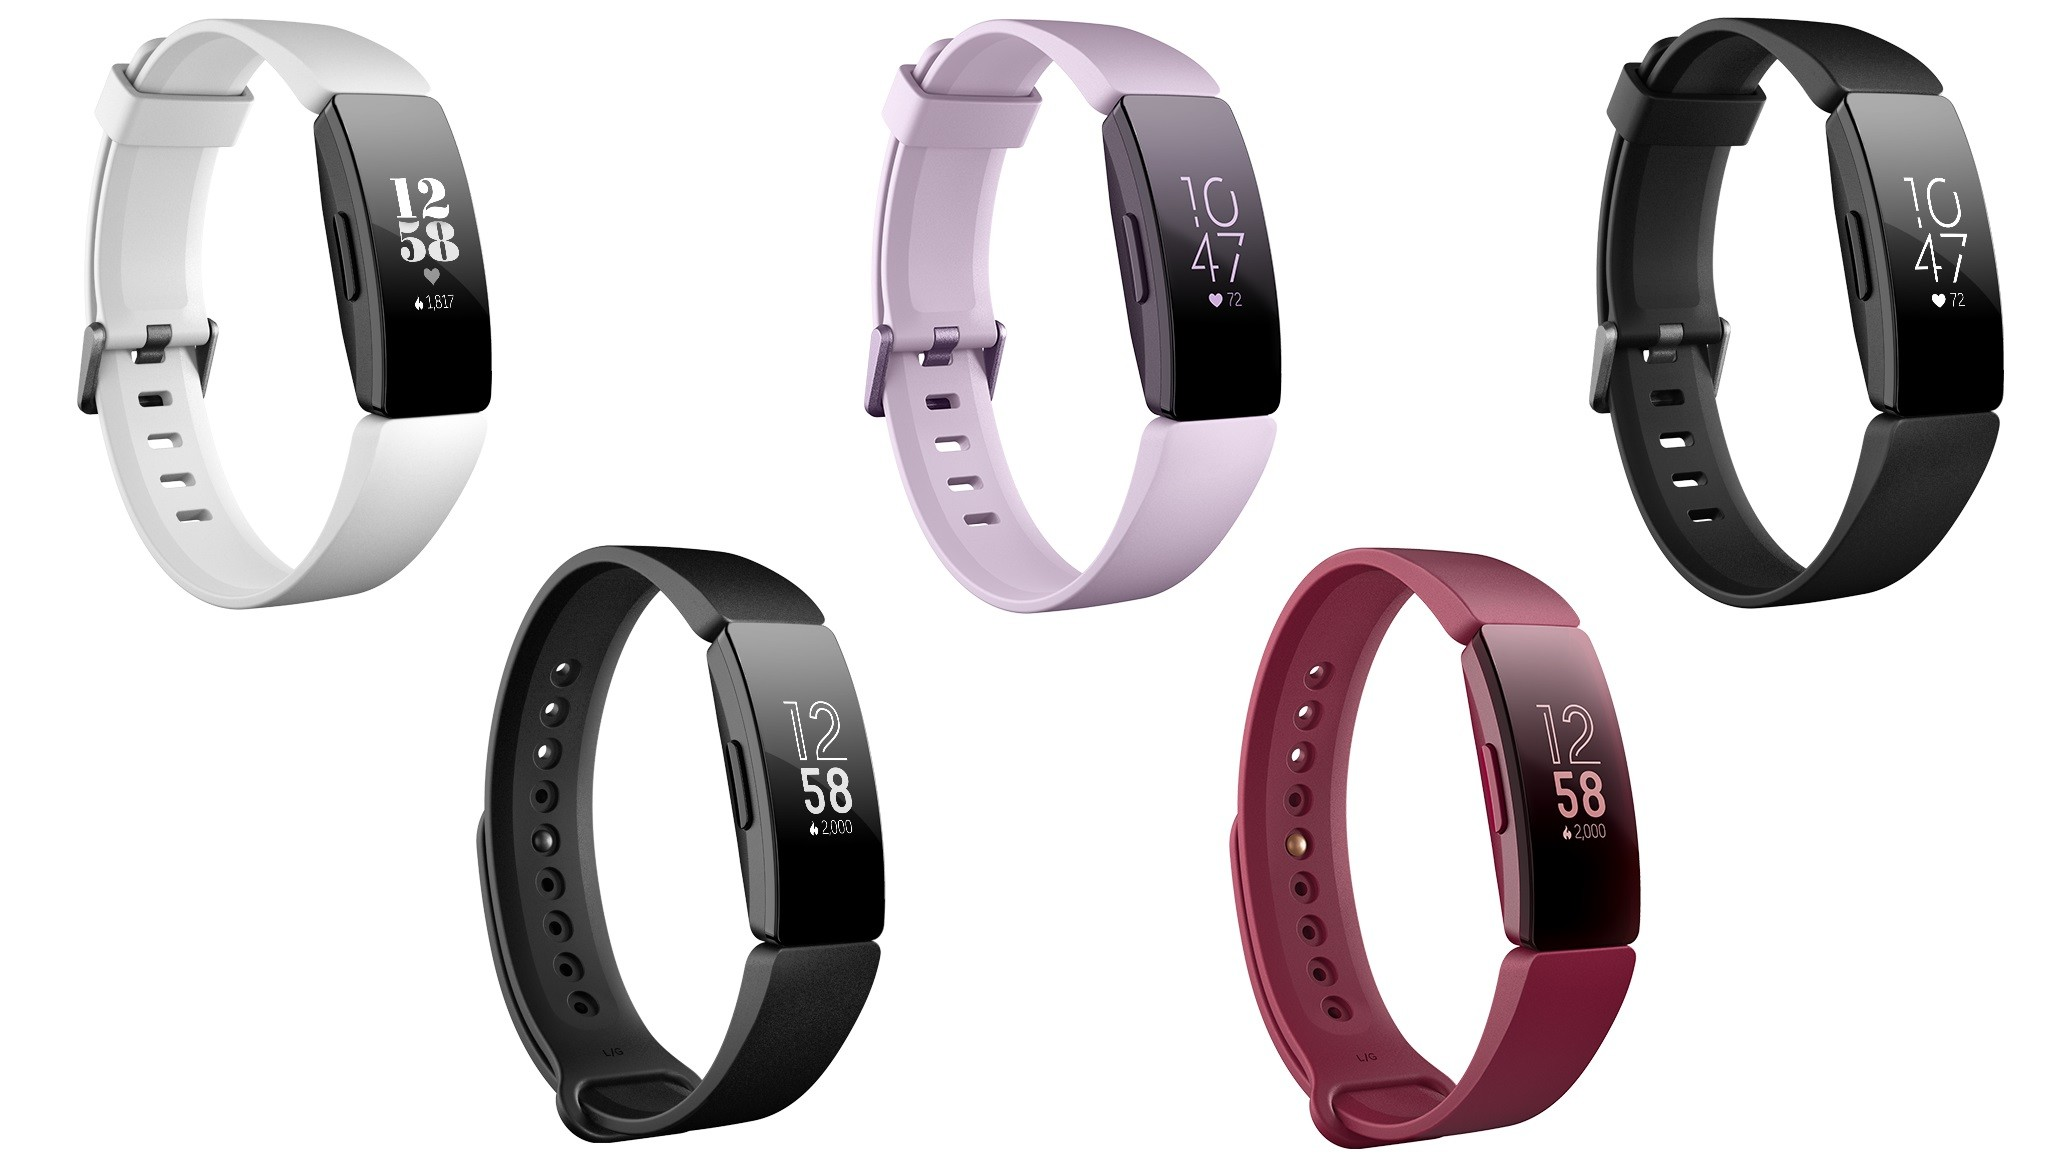 Fitbit expands its family of wearables with the Versa Lite, Ace 2